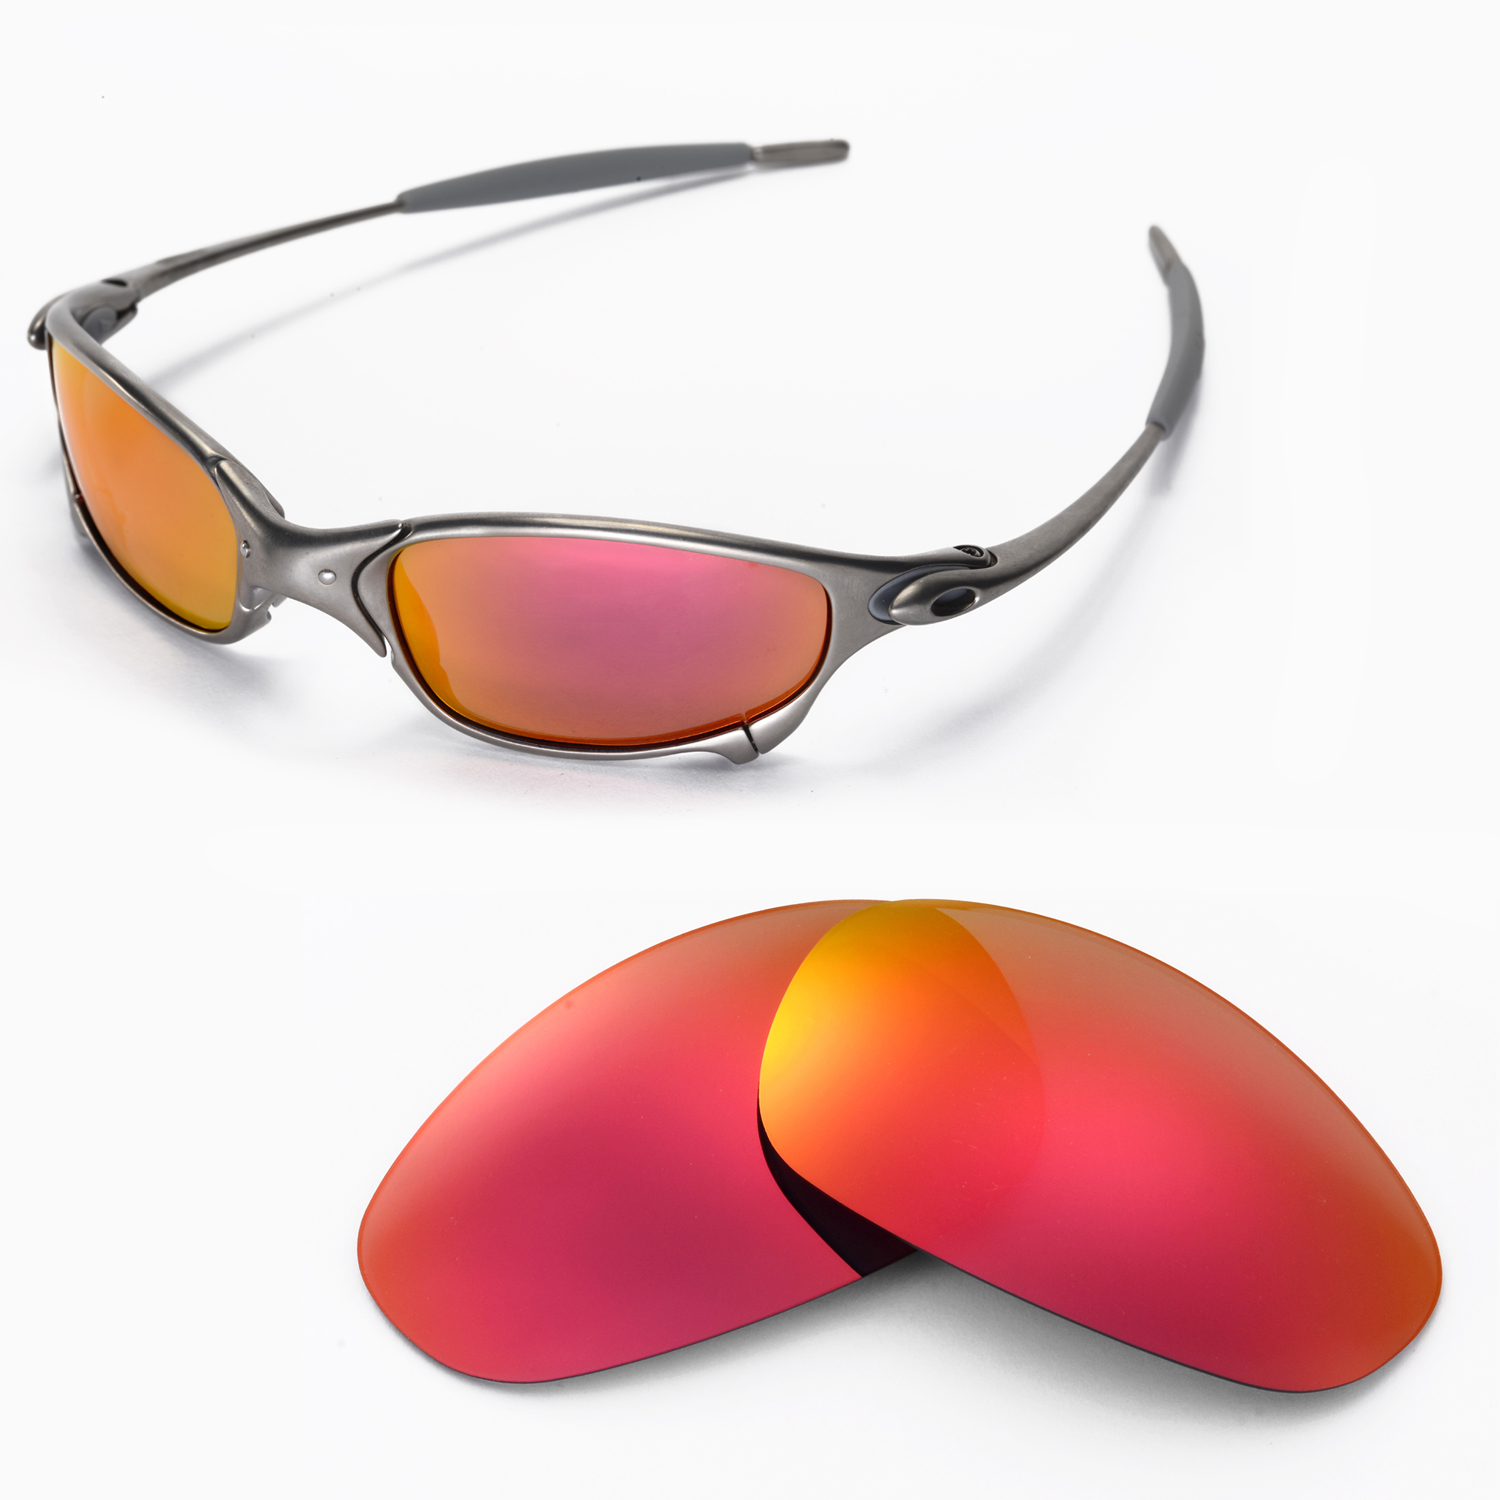 2ab0f23772 Details about New Walleva Polarized Fire Red Replacement Lenses For Oakley  Juliet Sunglasses